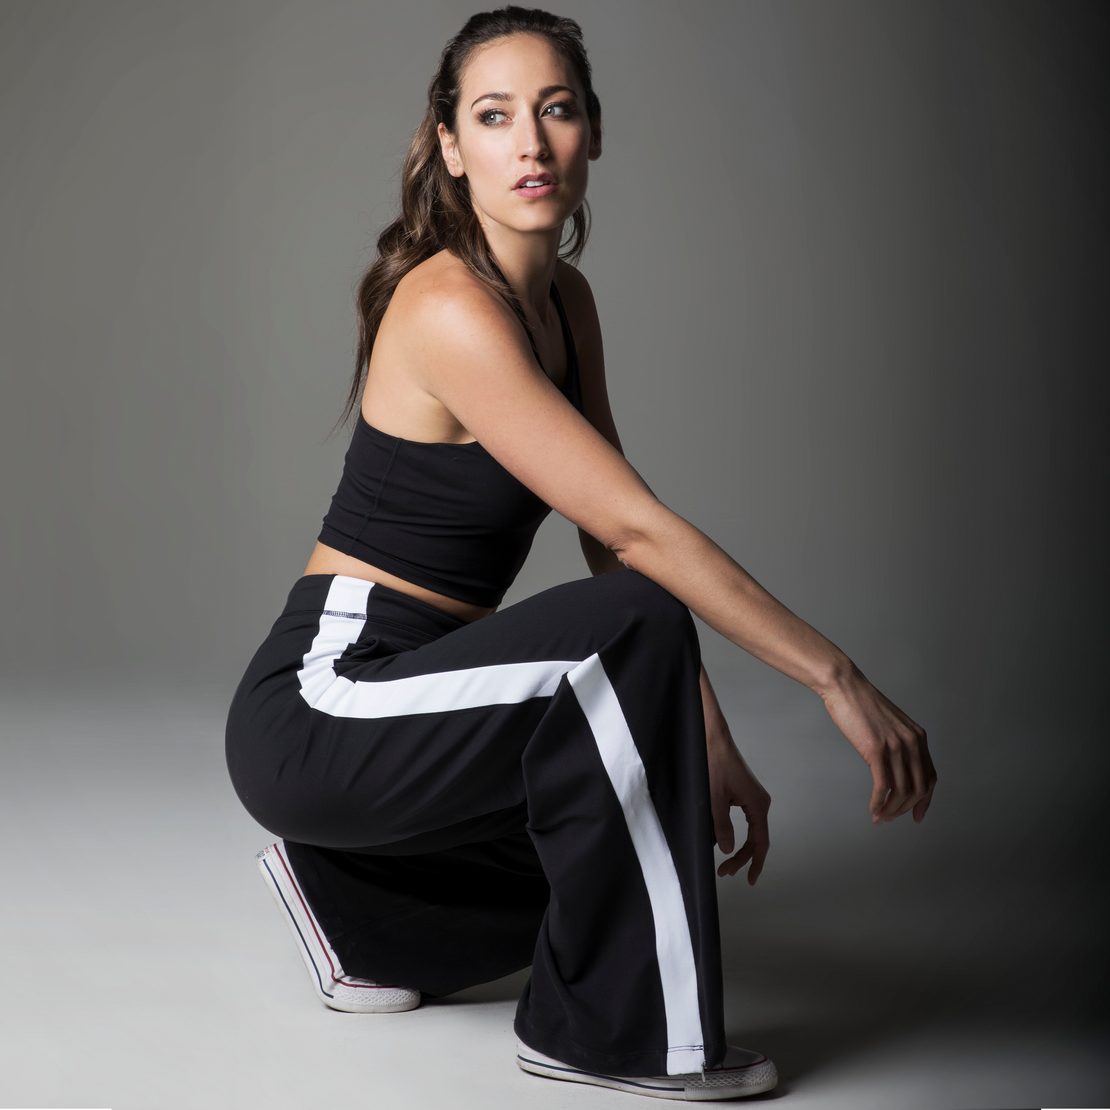 Let your Legs Breathe while you Flow: Wide Leg Yoga Pants are In Style